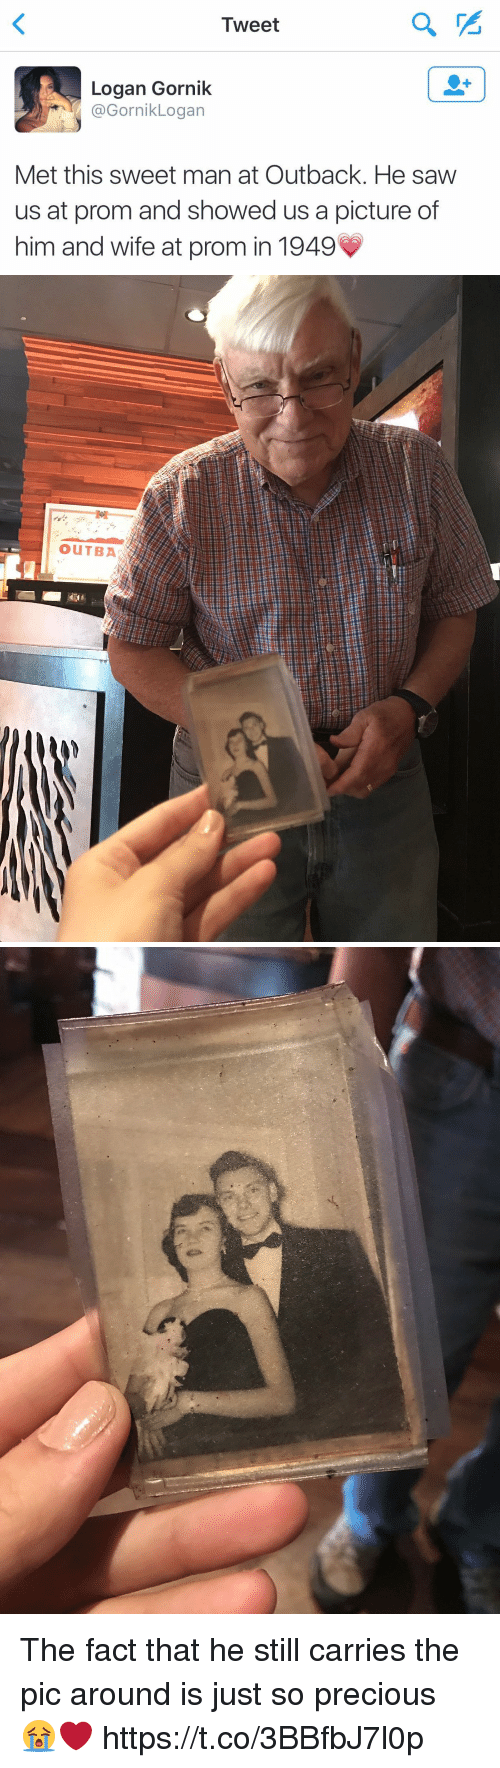 Precious, Saw, and Outback: Tweet  Logan Gornik  @Gornik Logan  Met this sweet man at Outback. He saw  us at prom and showed us a picture of  him and wife at prom in 1949   OuTBA The fact that he still carries the pic around is just so precious 😭❤️ https://t.co/3BBfbJ7l0p